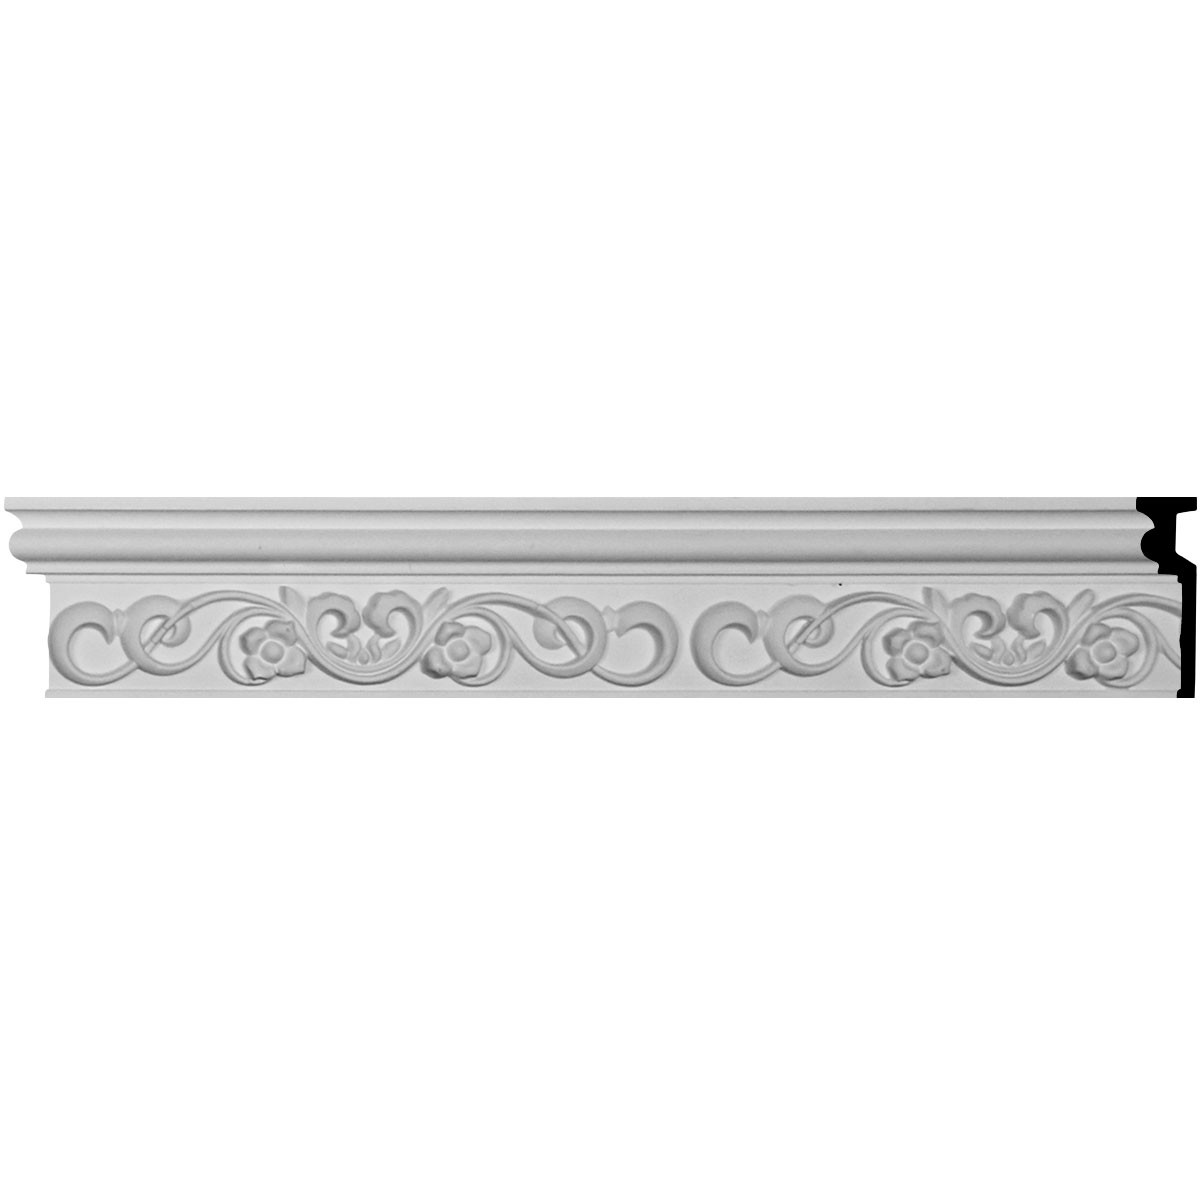 "EM-CHA04X01FA - 3 3/4""H x 1 1/8""P x 94 1/2""L Fairmont Chair Rail"